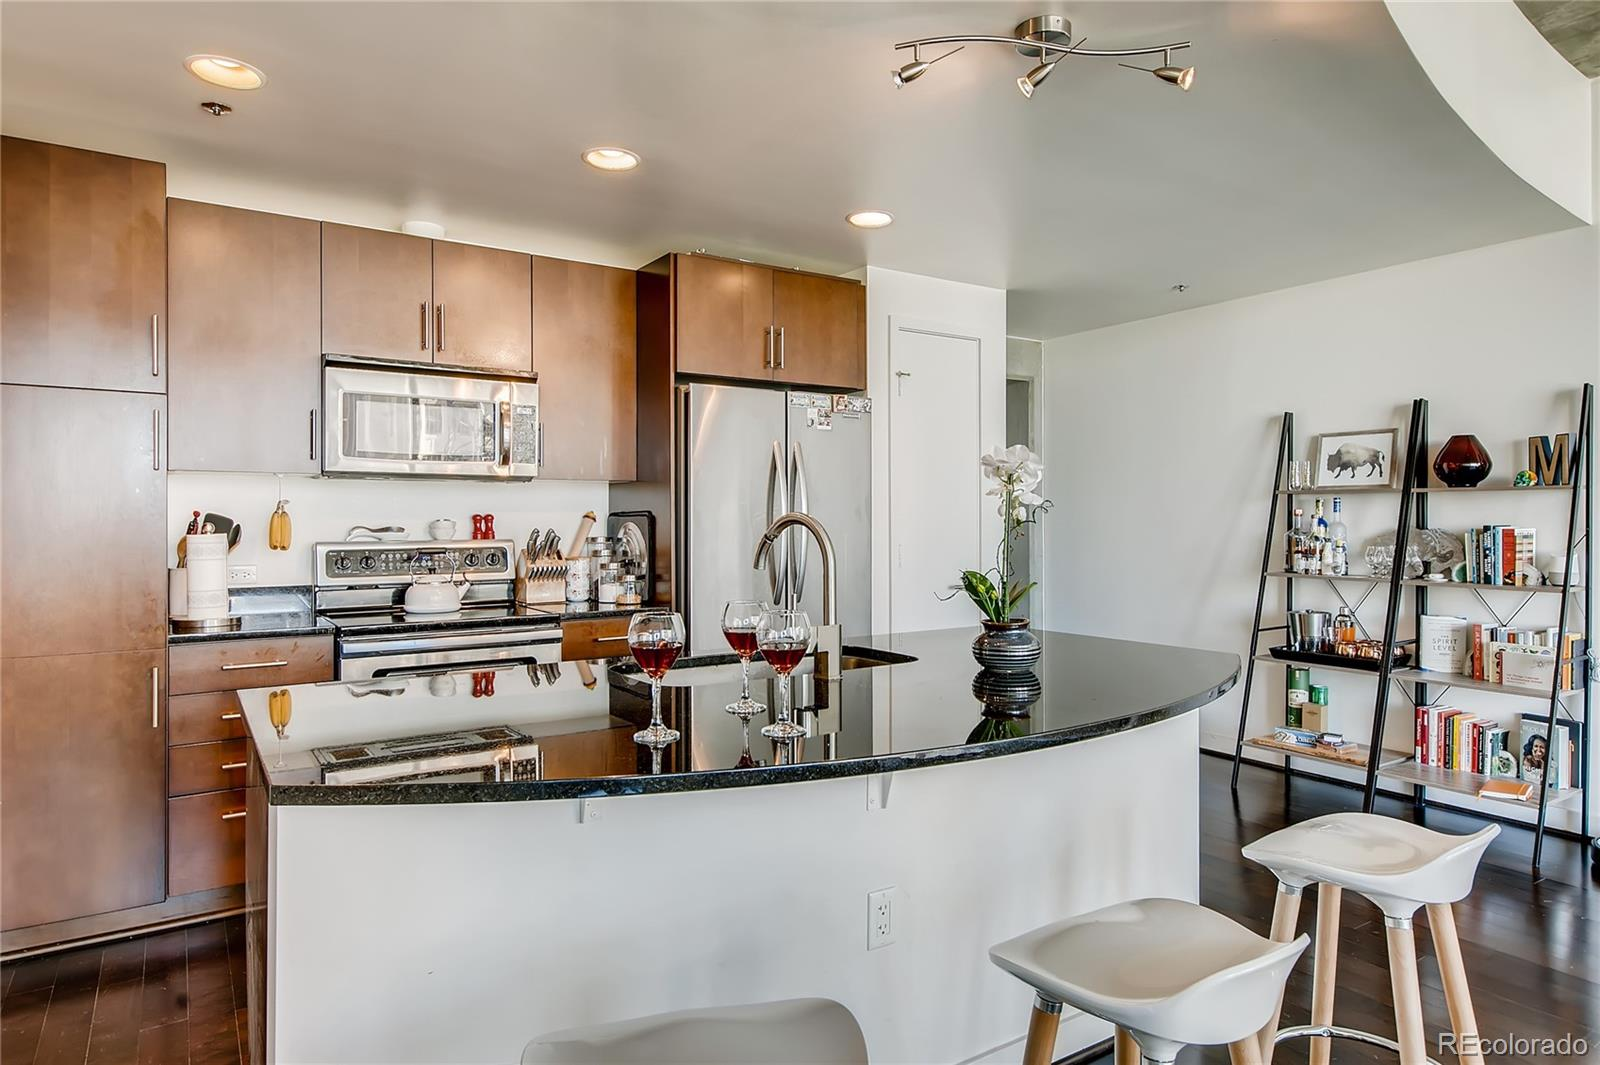 MLS# 9889318 - 8 - 891 14th Street #1807, Denver, CO 80202